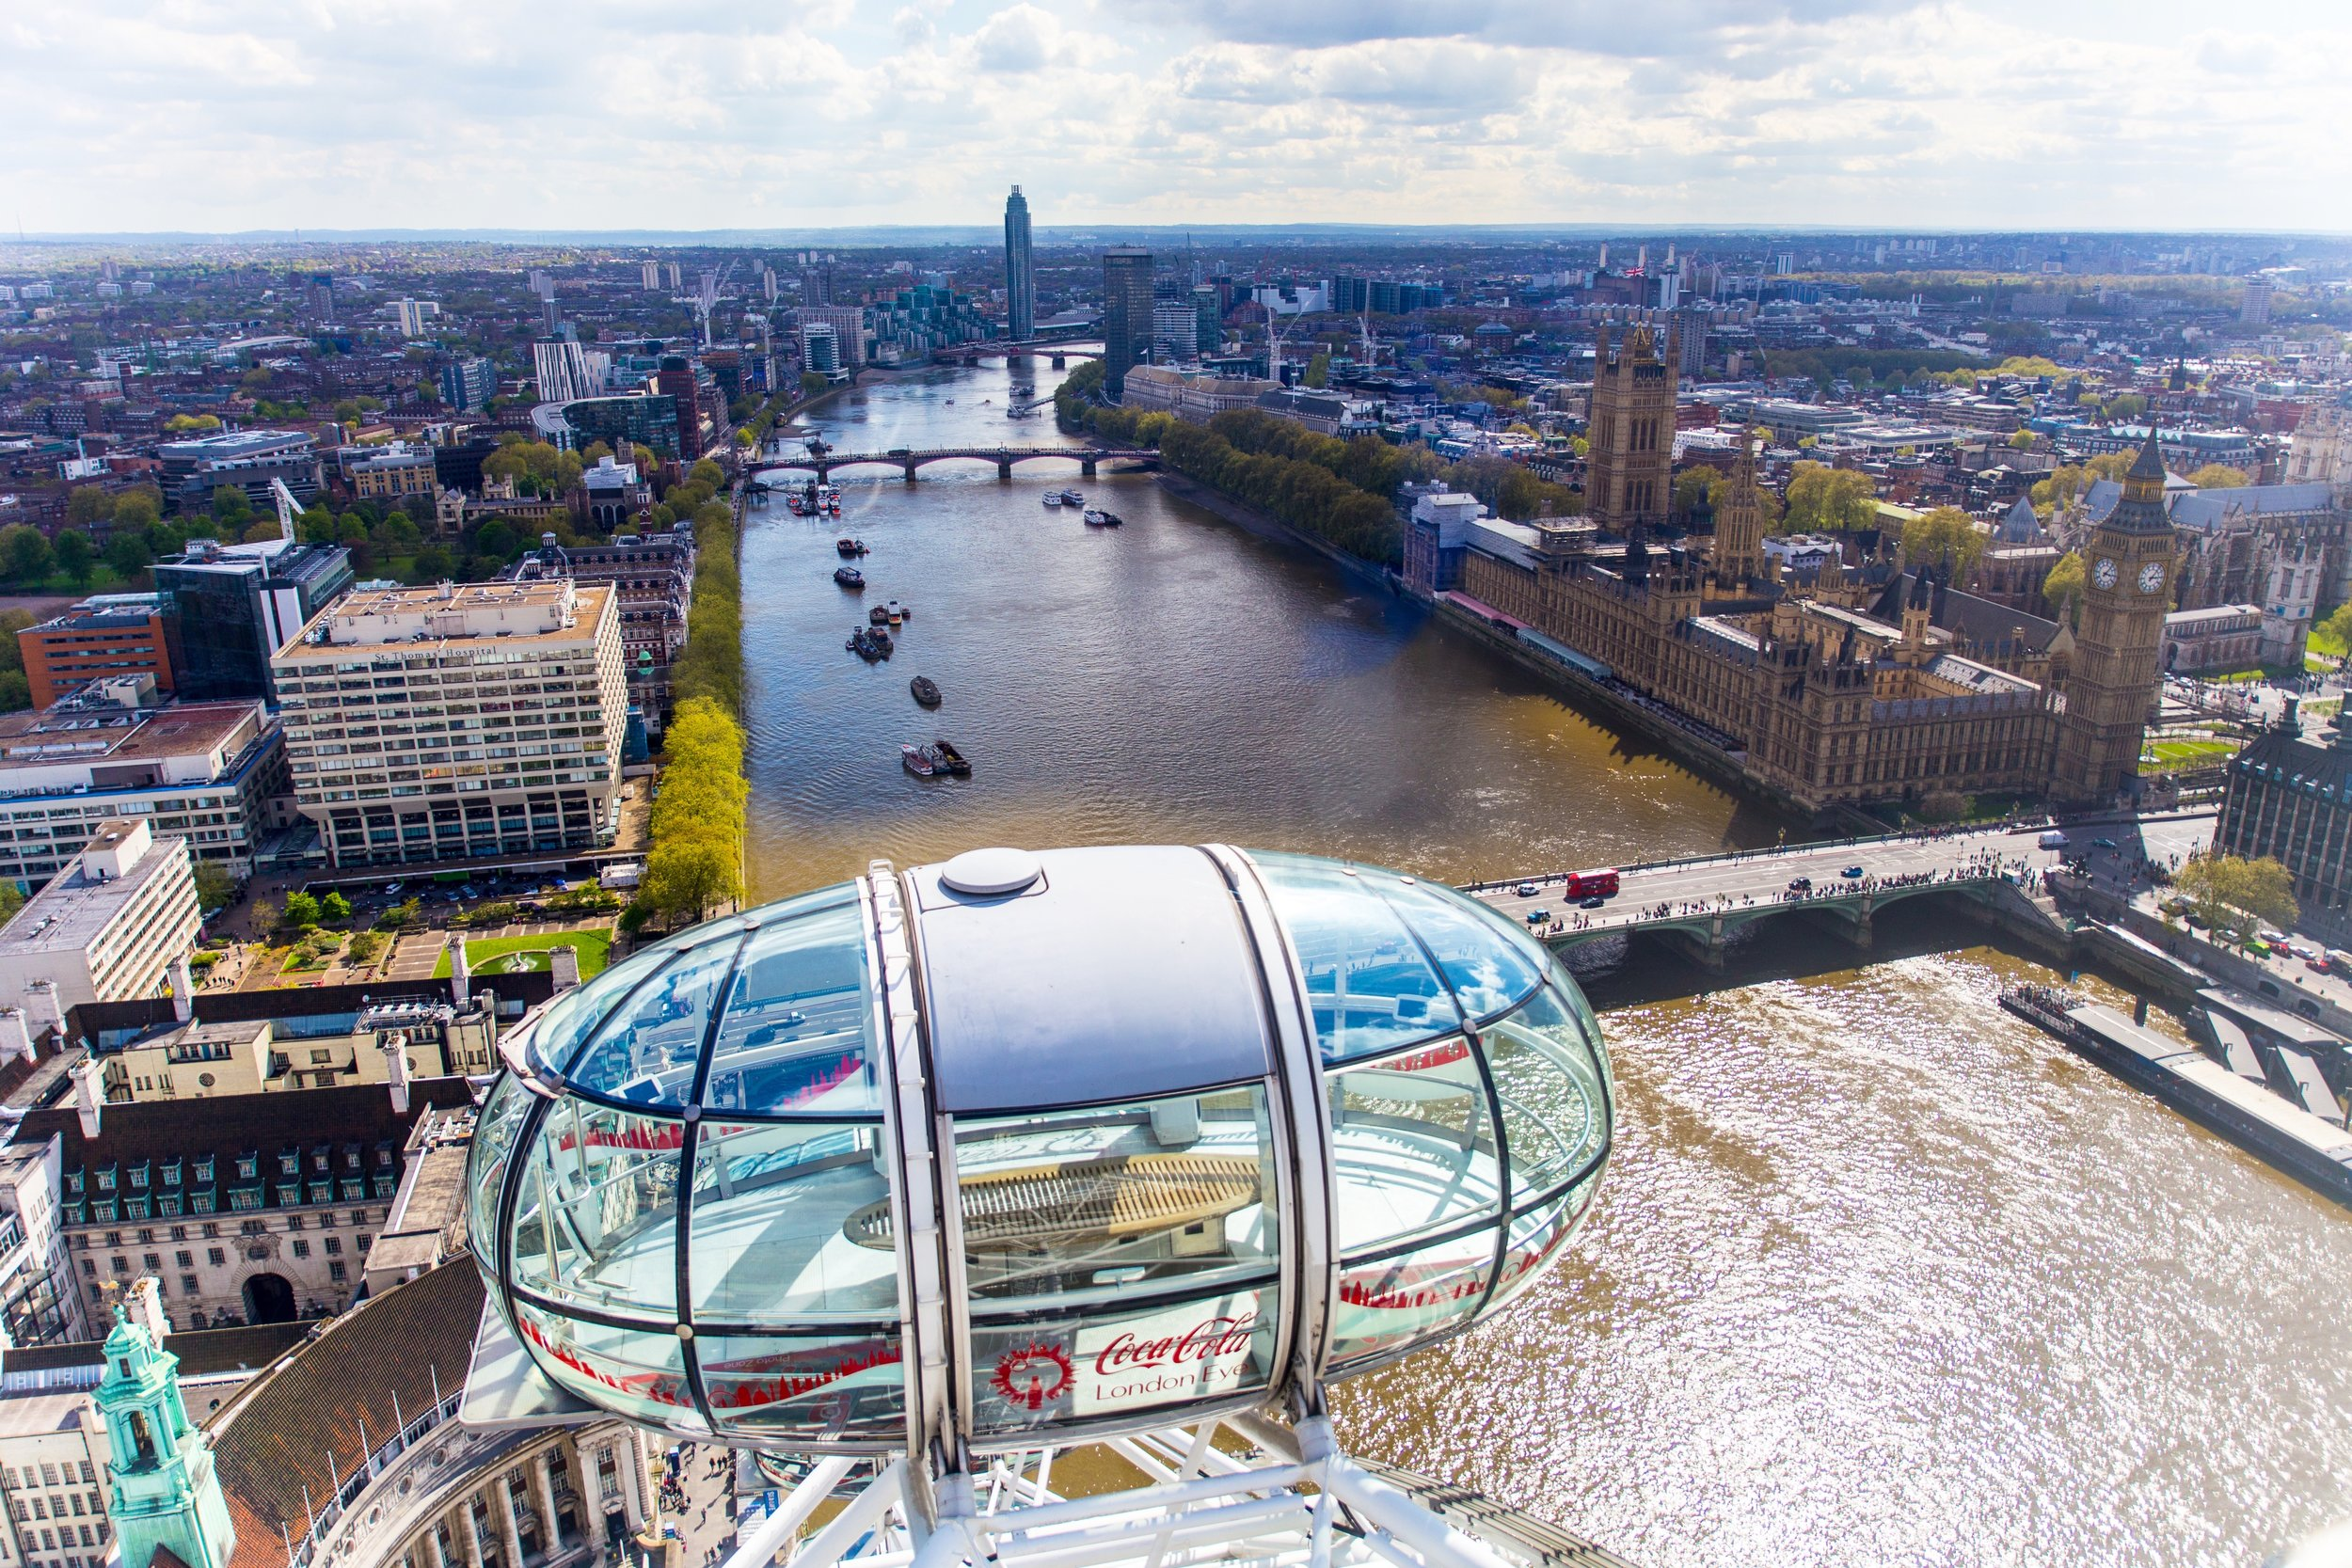 View from the London Eye, England